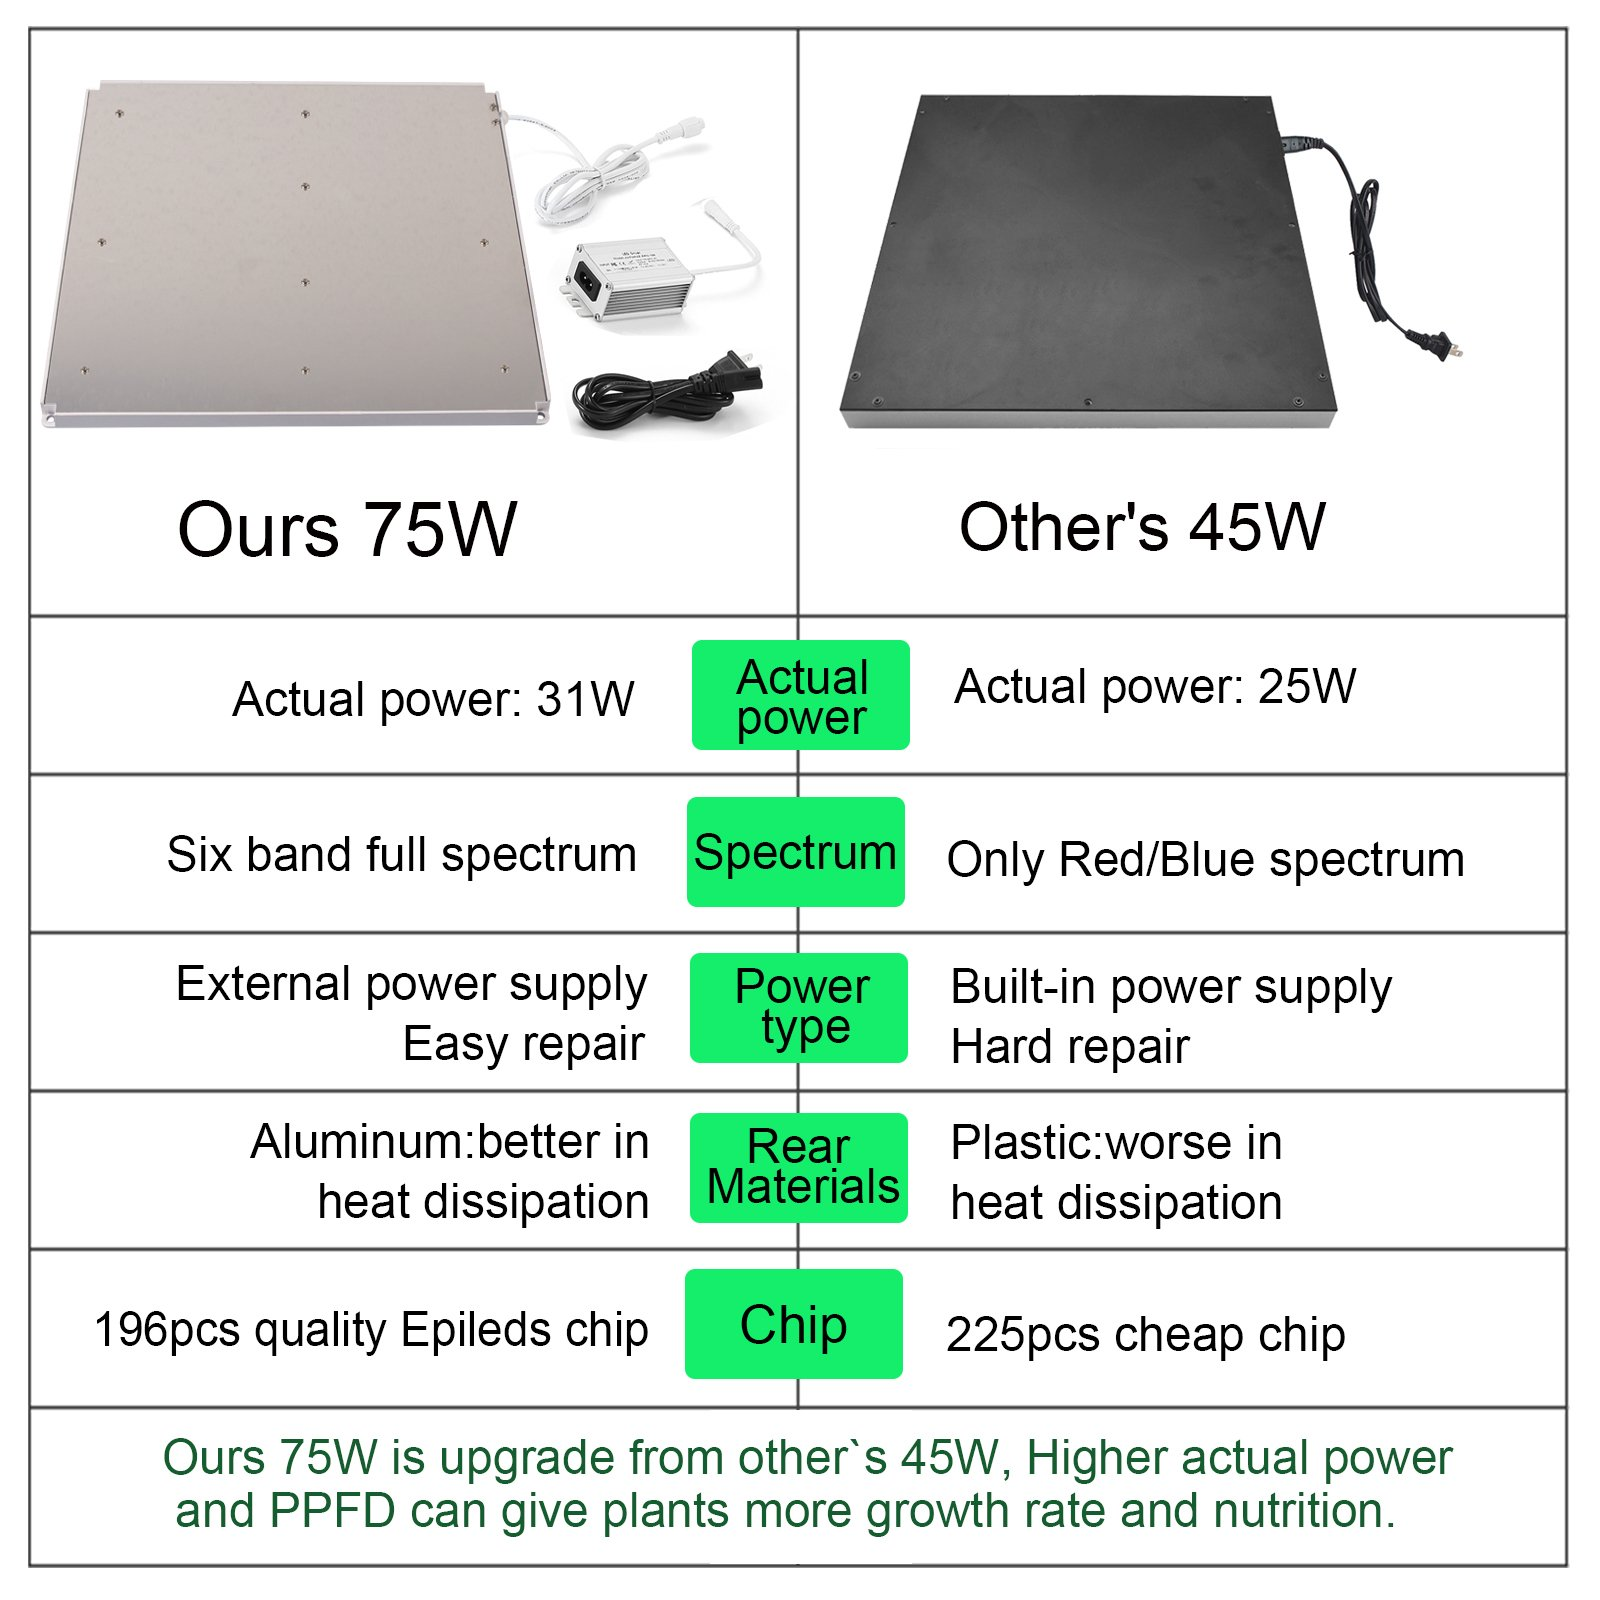 LED Grow Light for Indoor Plants,YGROW Upgraded 75W Growing Lamp Light Bulbs with Exclusive Full Spectrum for Greenhouse Hydroponic Plants from Seeding to Harvest by YGROW (Image #6)